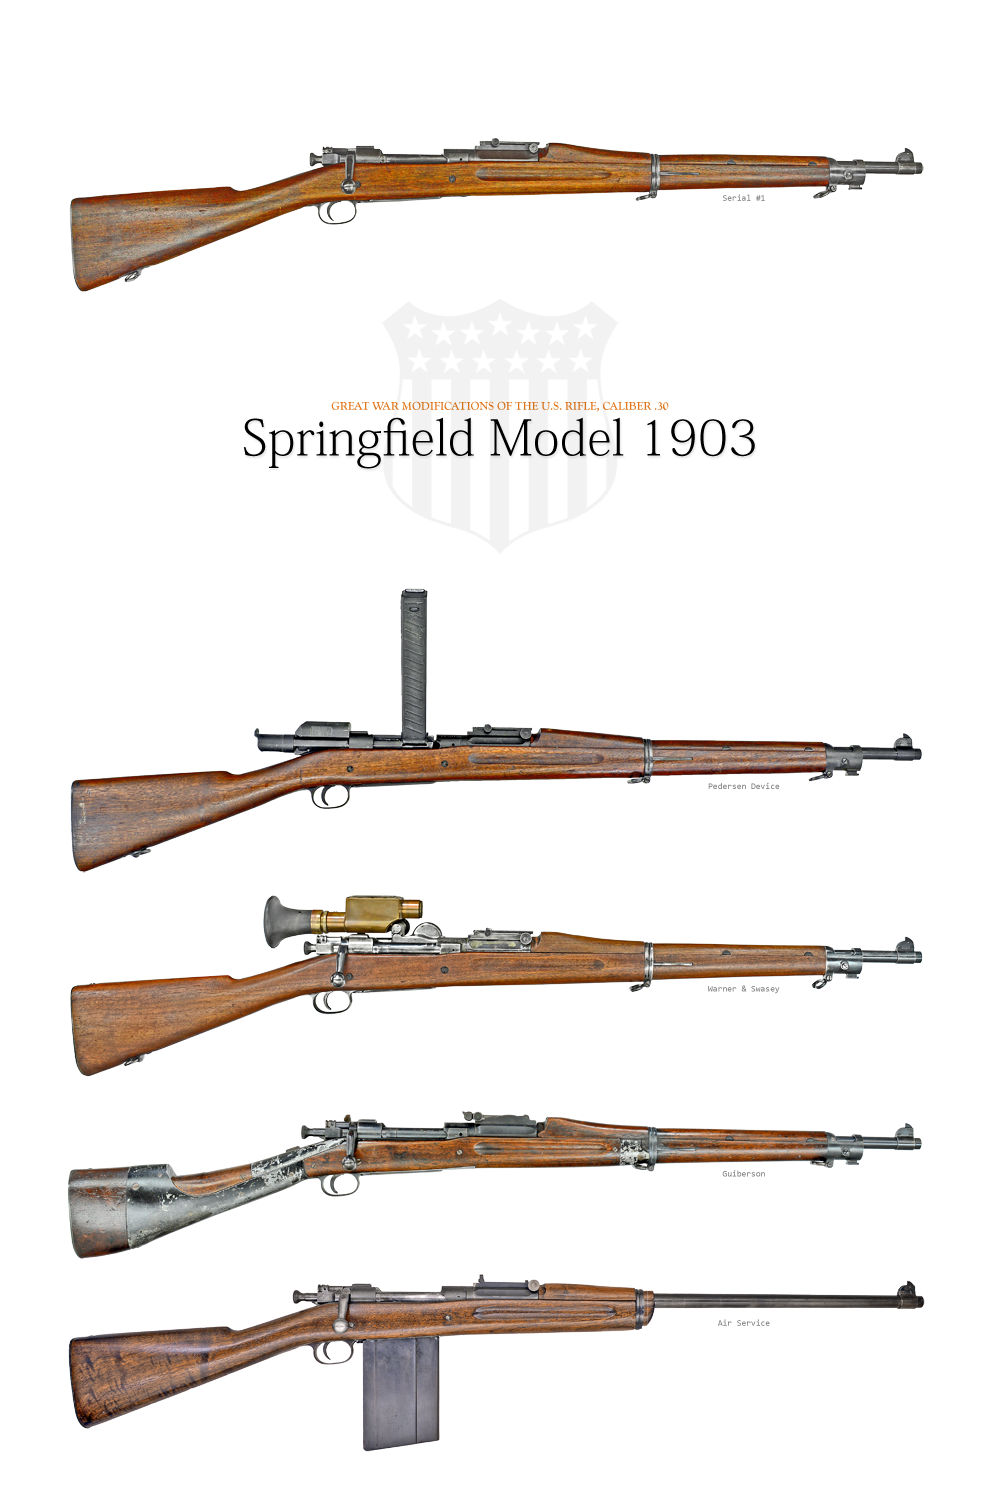 Great War Modifications of the Springfield 1903 – C&Rsenal